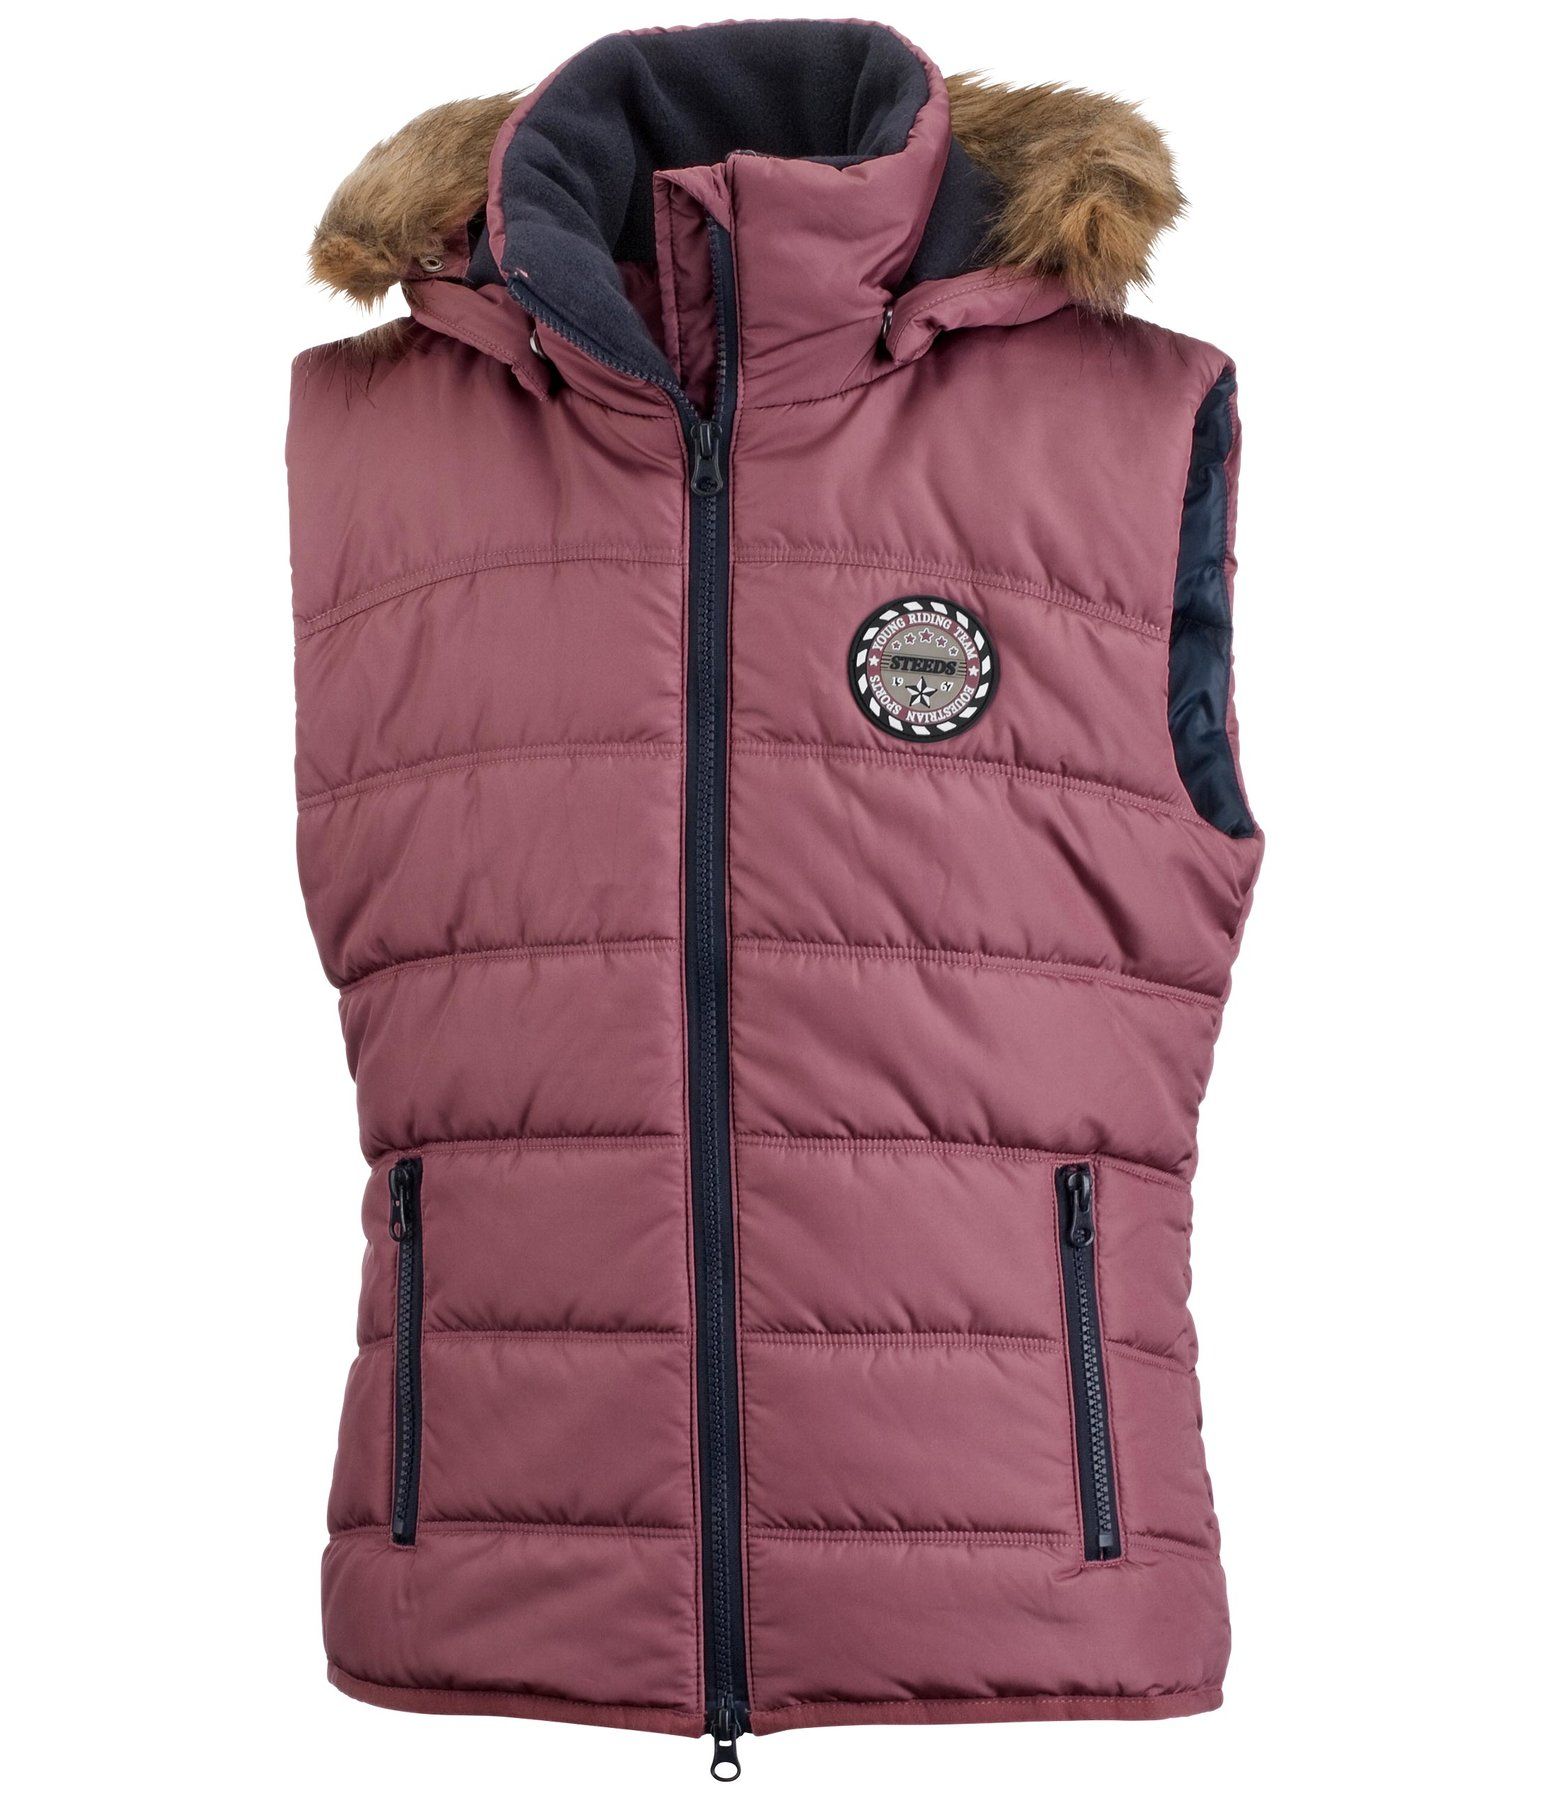 ef49b7855 STEEDS Children's Hooded Riding Gilet Erna - 680539-8Y-AR